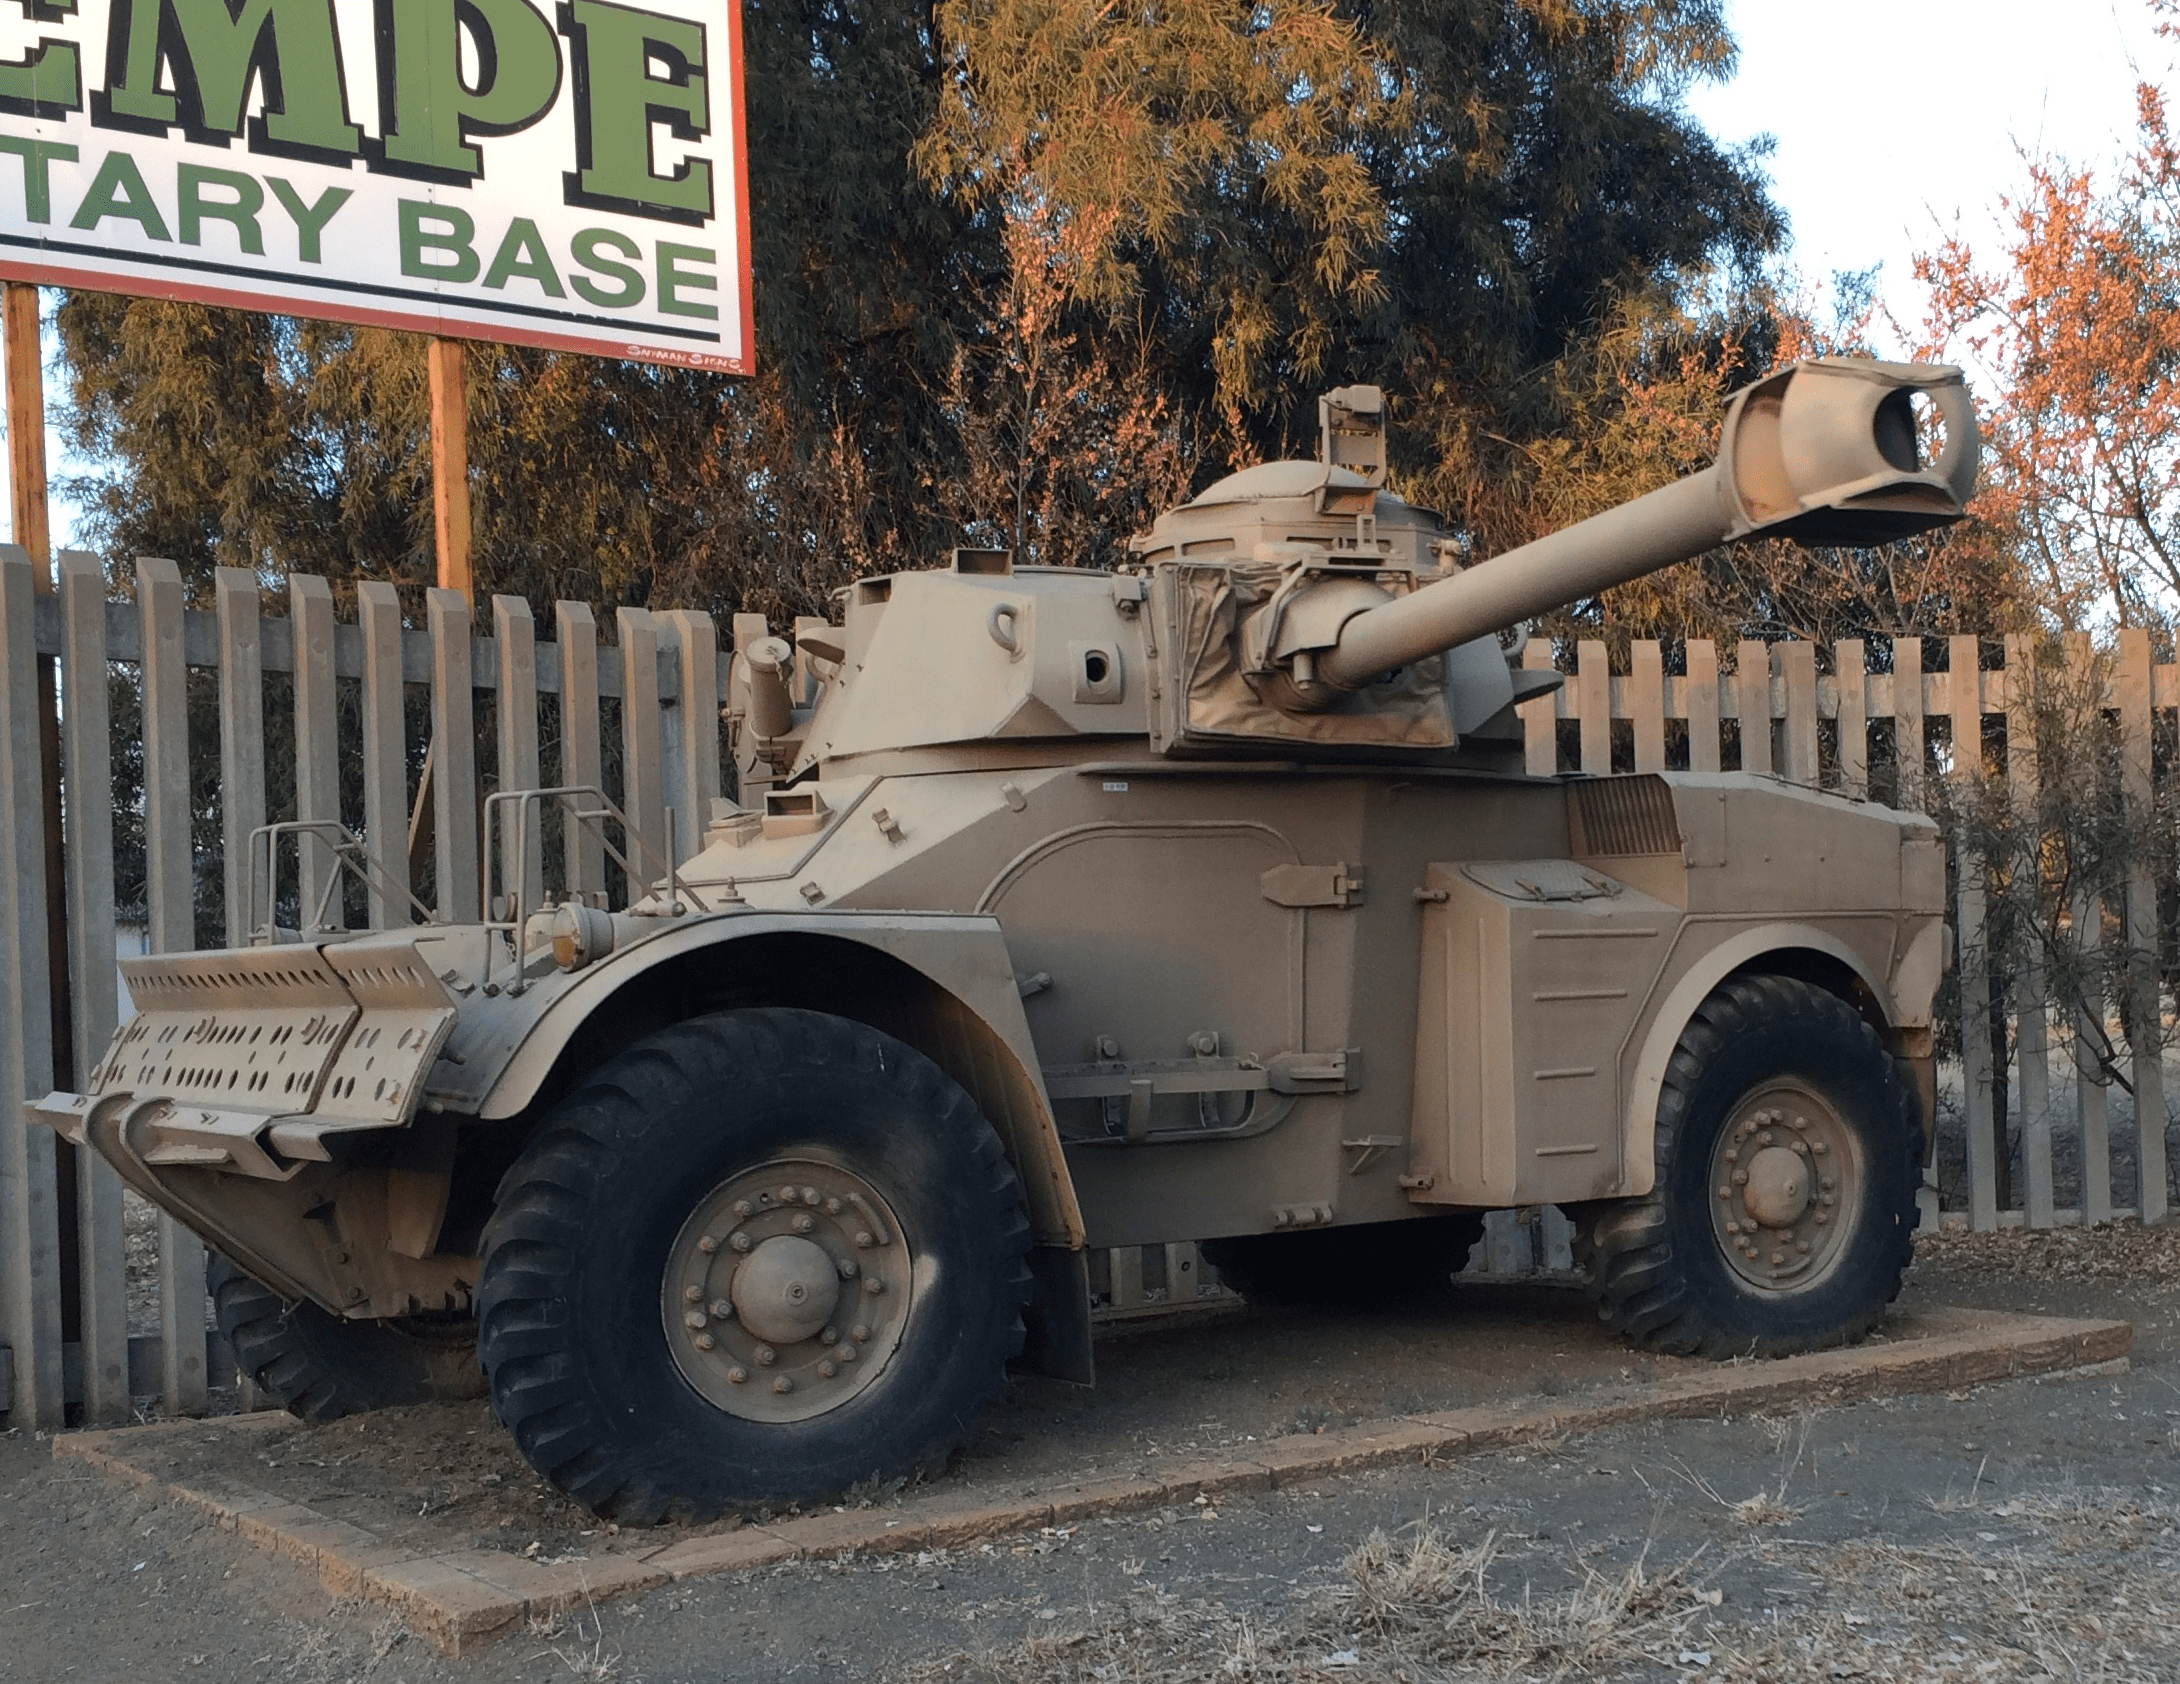 This South African Eland Mk7 armored car is an example of a reconnaissance vehicle. The 4X4 wheeled layout and minimal armor allow this armored car to maneuver rapidly and perform reconnaissance, while the 90mm gun can be used to engage targets of opportunity.